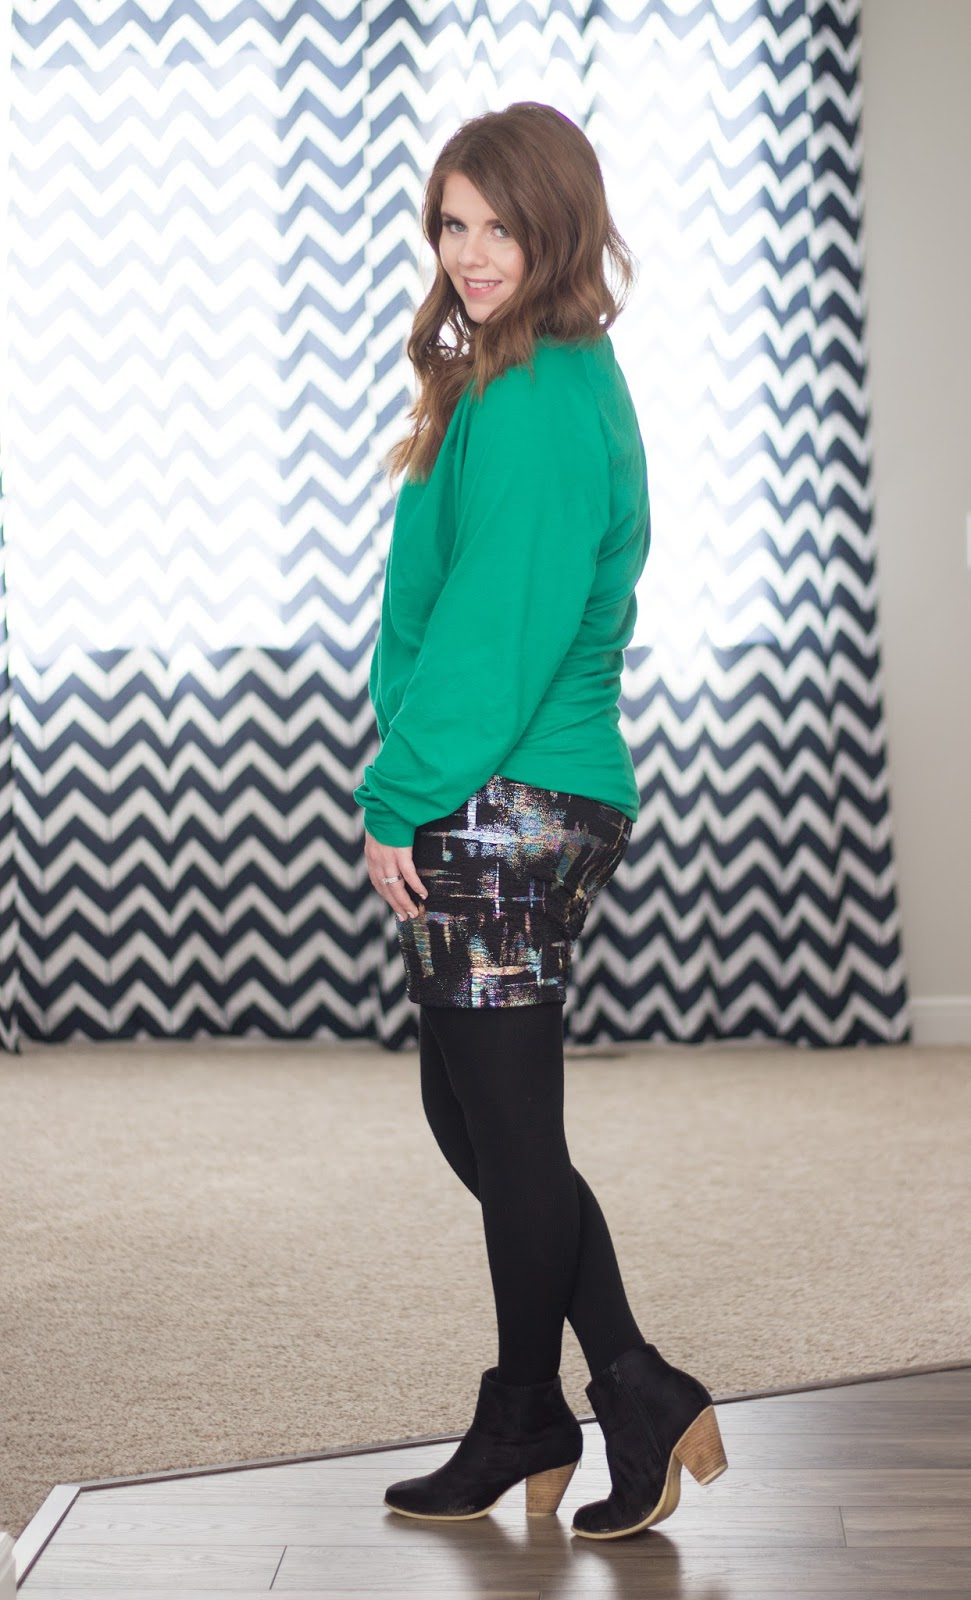 Styling a dolman sweater and a pencil skirt graphic